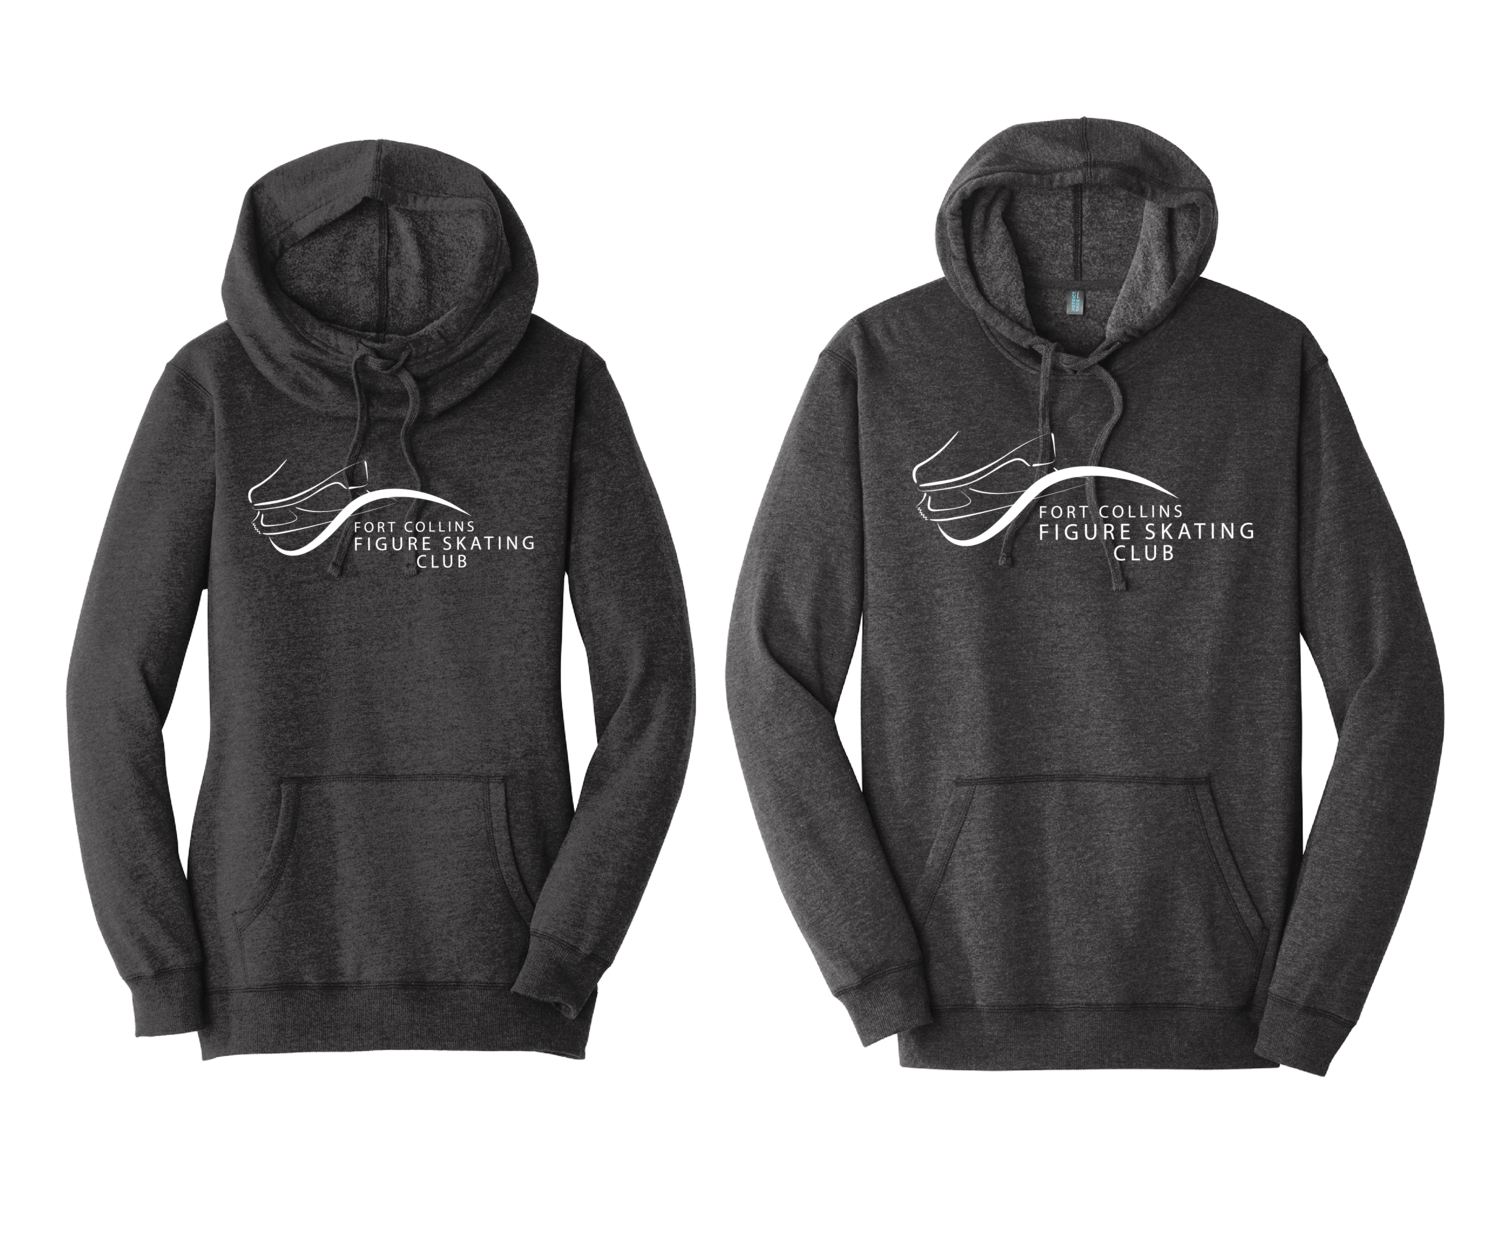 Printed District ® Lightweight Hoodie - FCFSC